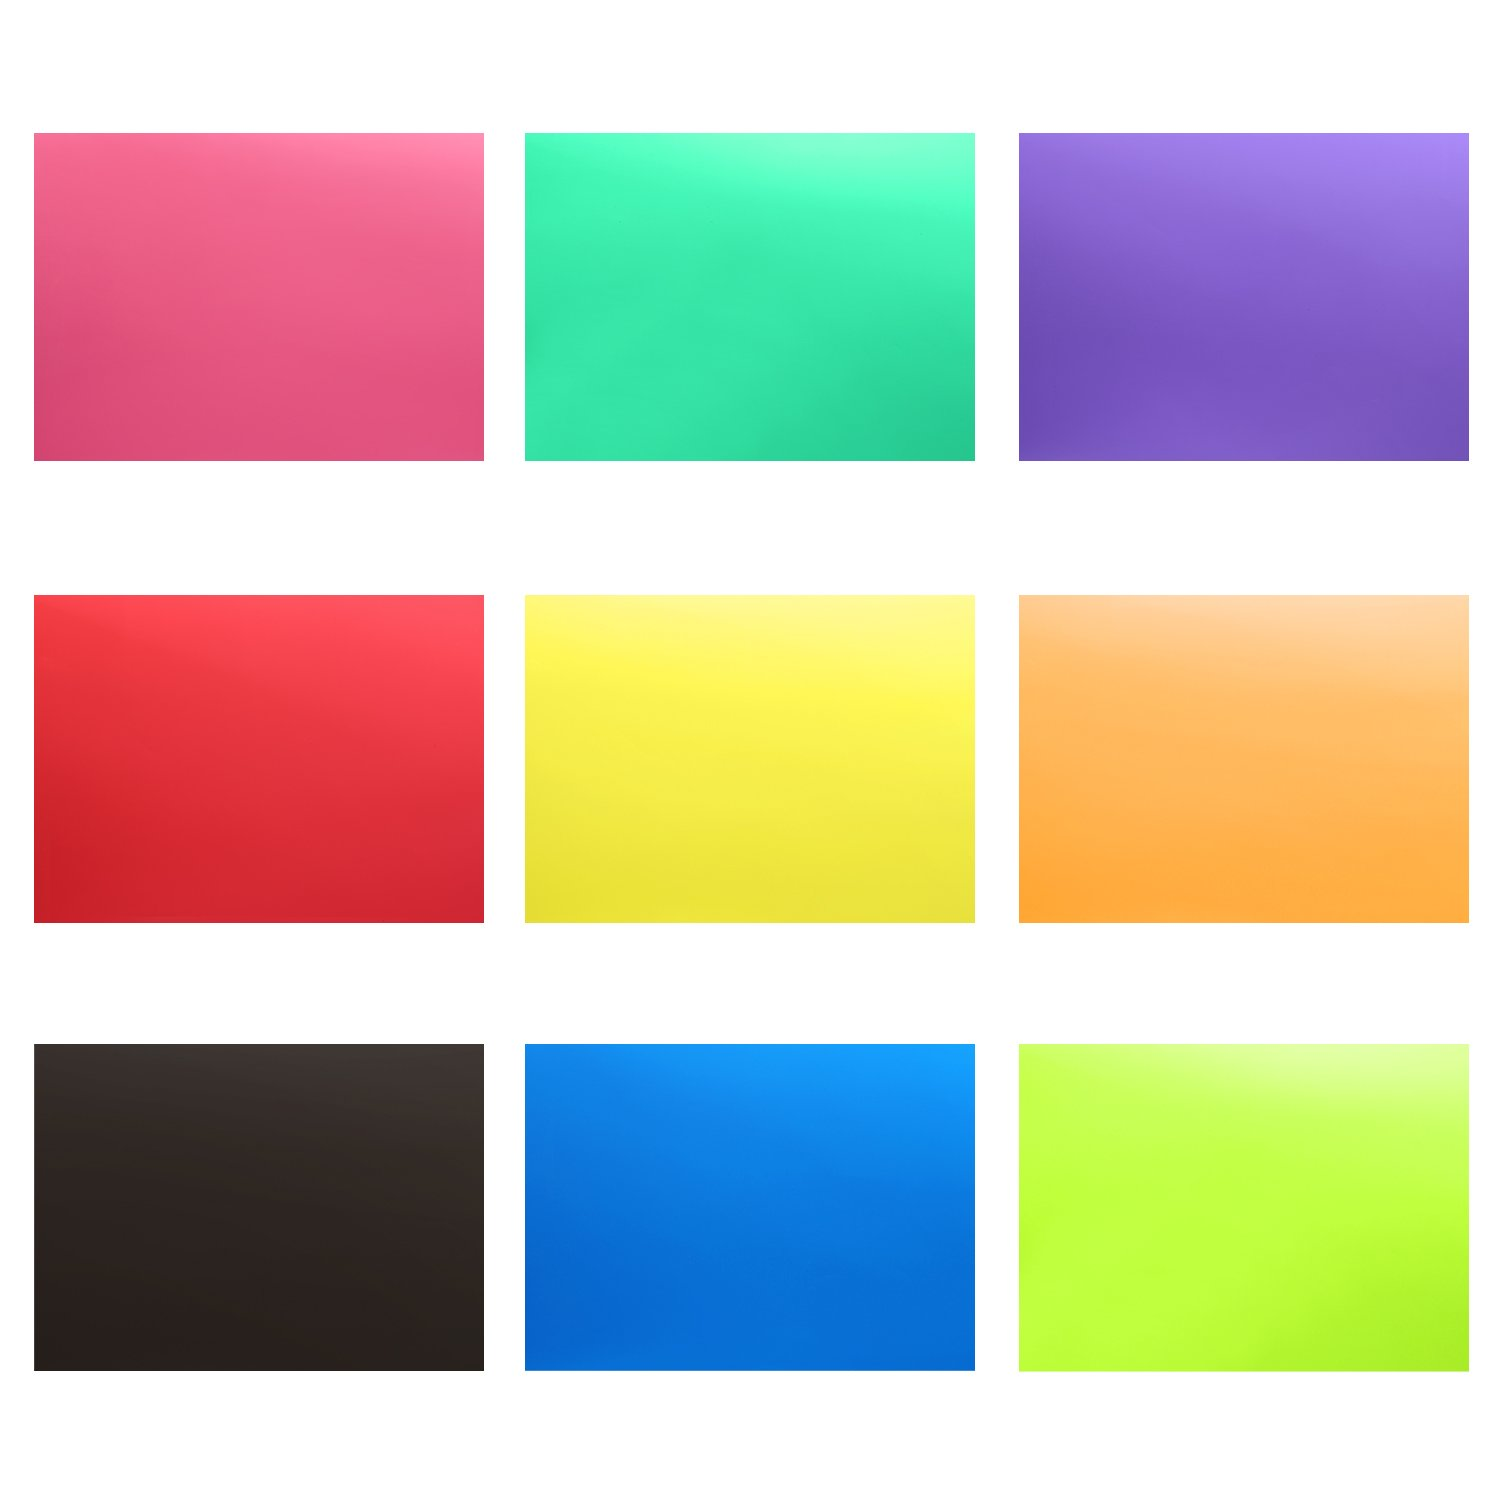 Neewer 9 Pieces Flash Lighting Gel Filter Kit with 9 Different Colors - 12x8.3 inches Transparent Color Correction Lighting Film Plastic Sheets by Neewer